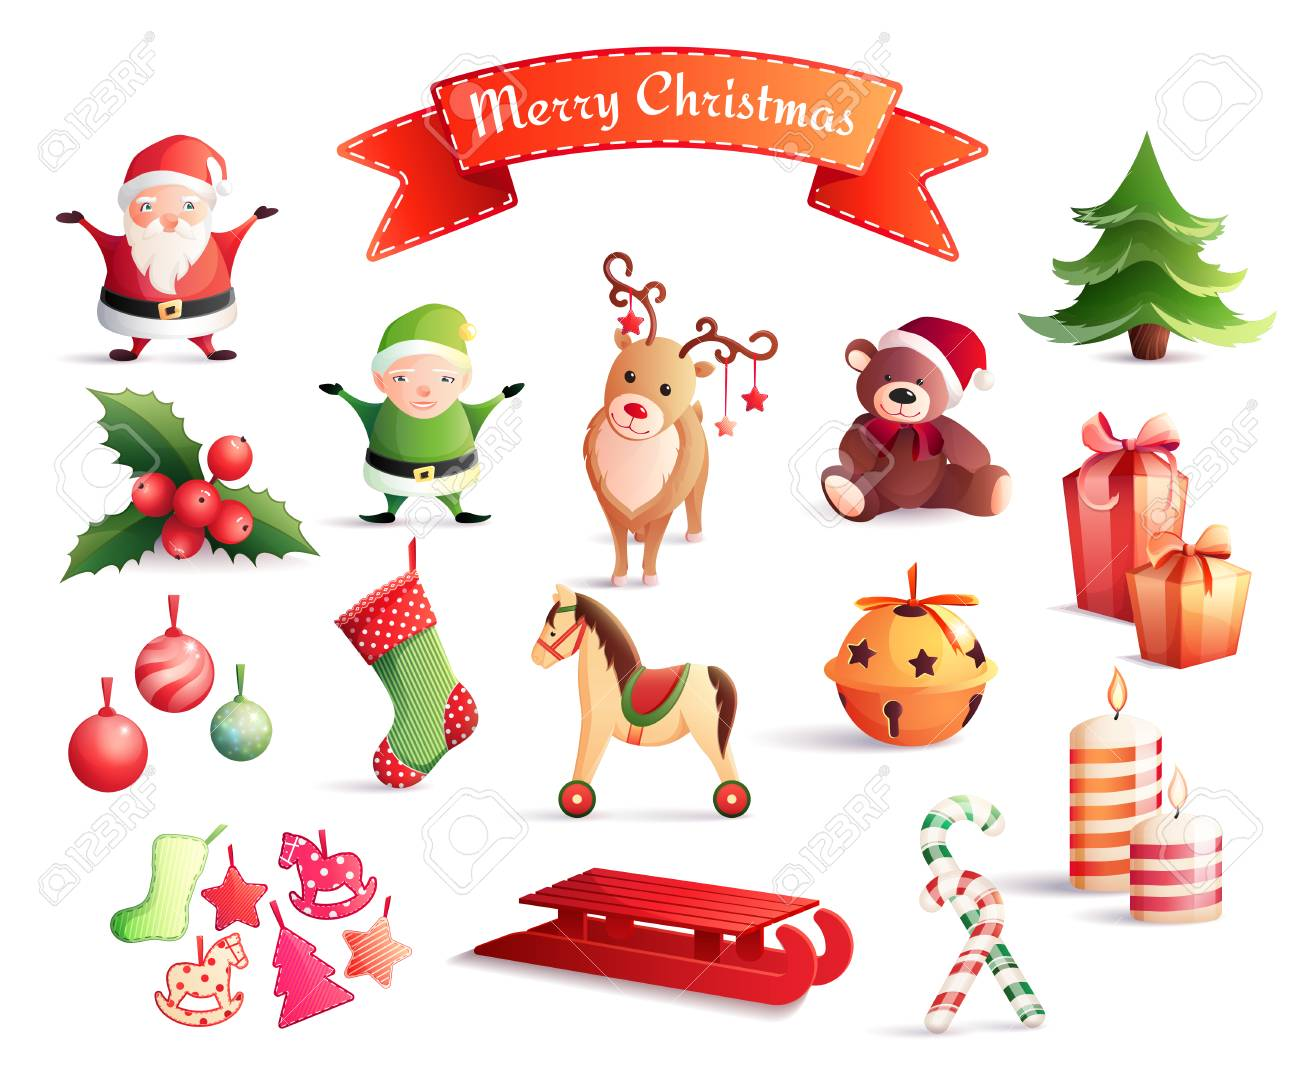 Lovely Christmas Decorations Cartoon Pictures Part - 14: Set Of Cartoon Icons With Christmas Decorations Including Santa, Year Tree,  Gifts, Animals